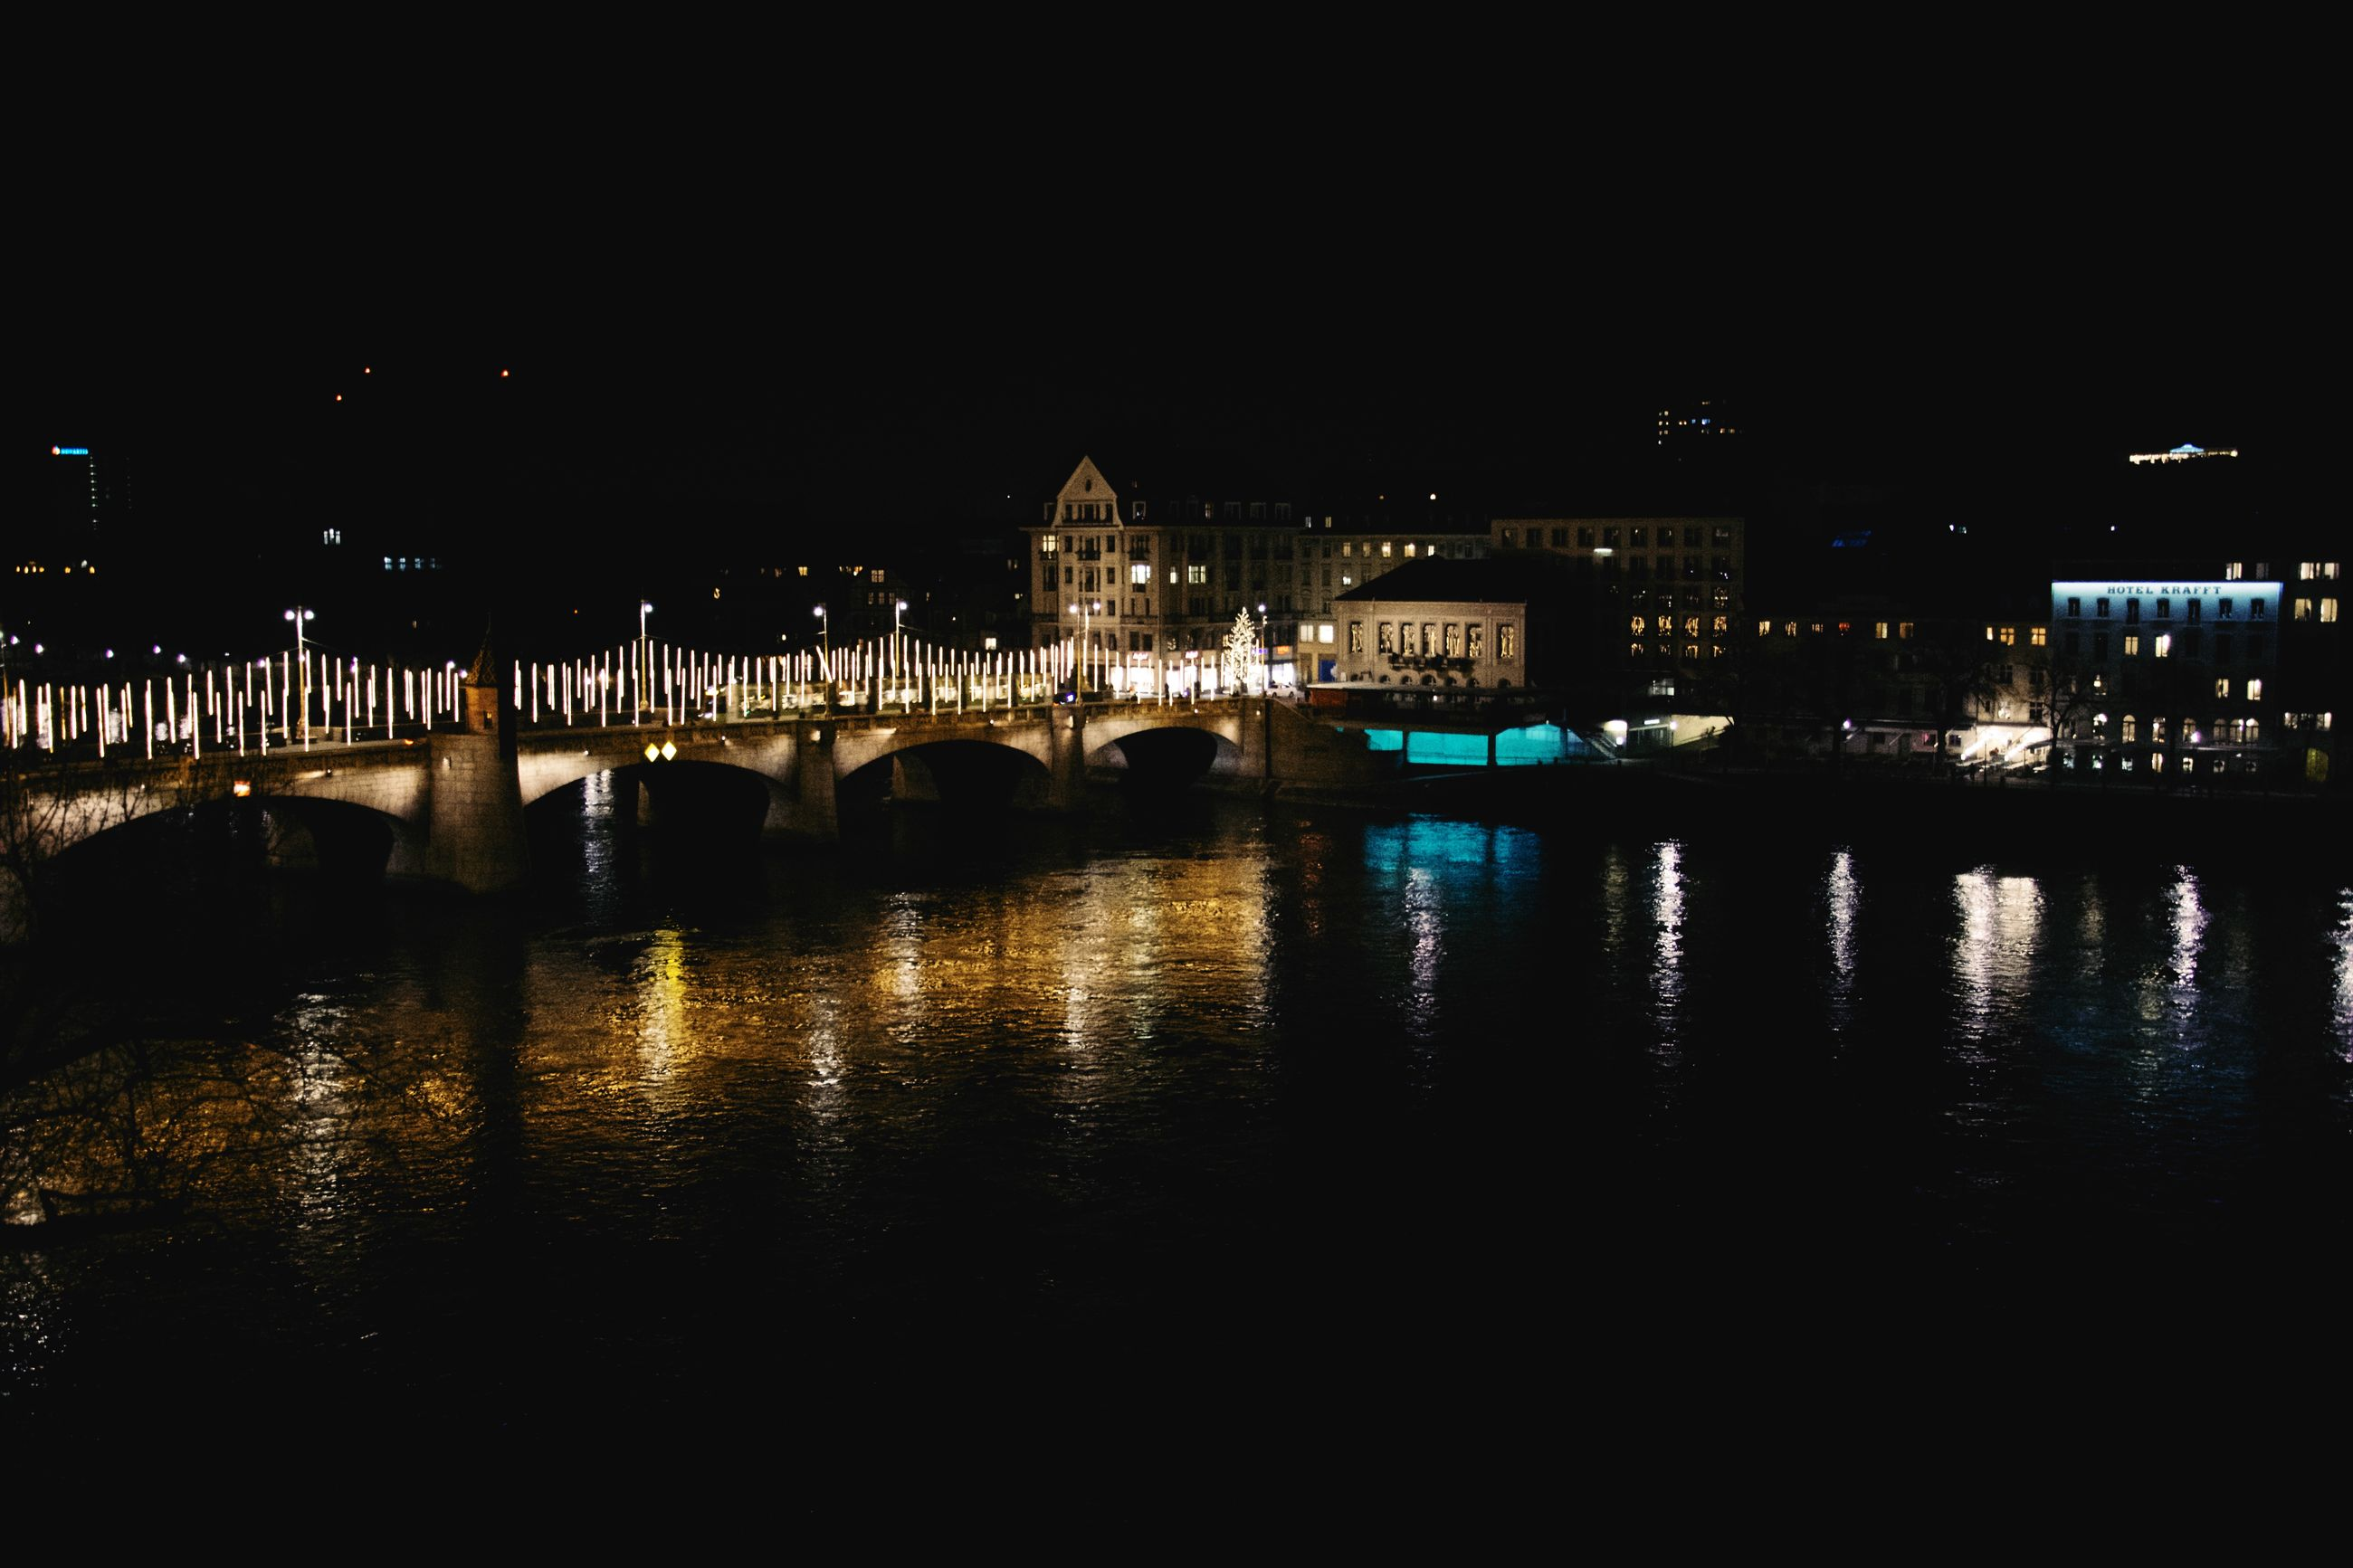 architecture, night, built structure, water, illuminated, reflection, building exterior, city, river, bridge, connection, waterfront, sky, no people, bridge - man made structure, copy space, nature, building, transportation, cityscape, outdoors, arch bridge